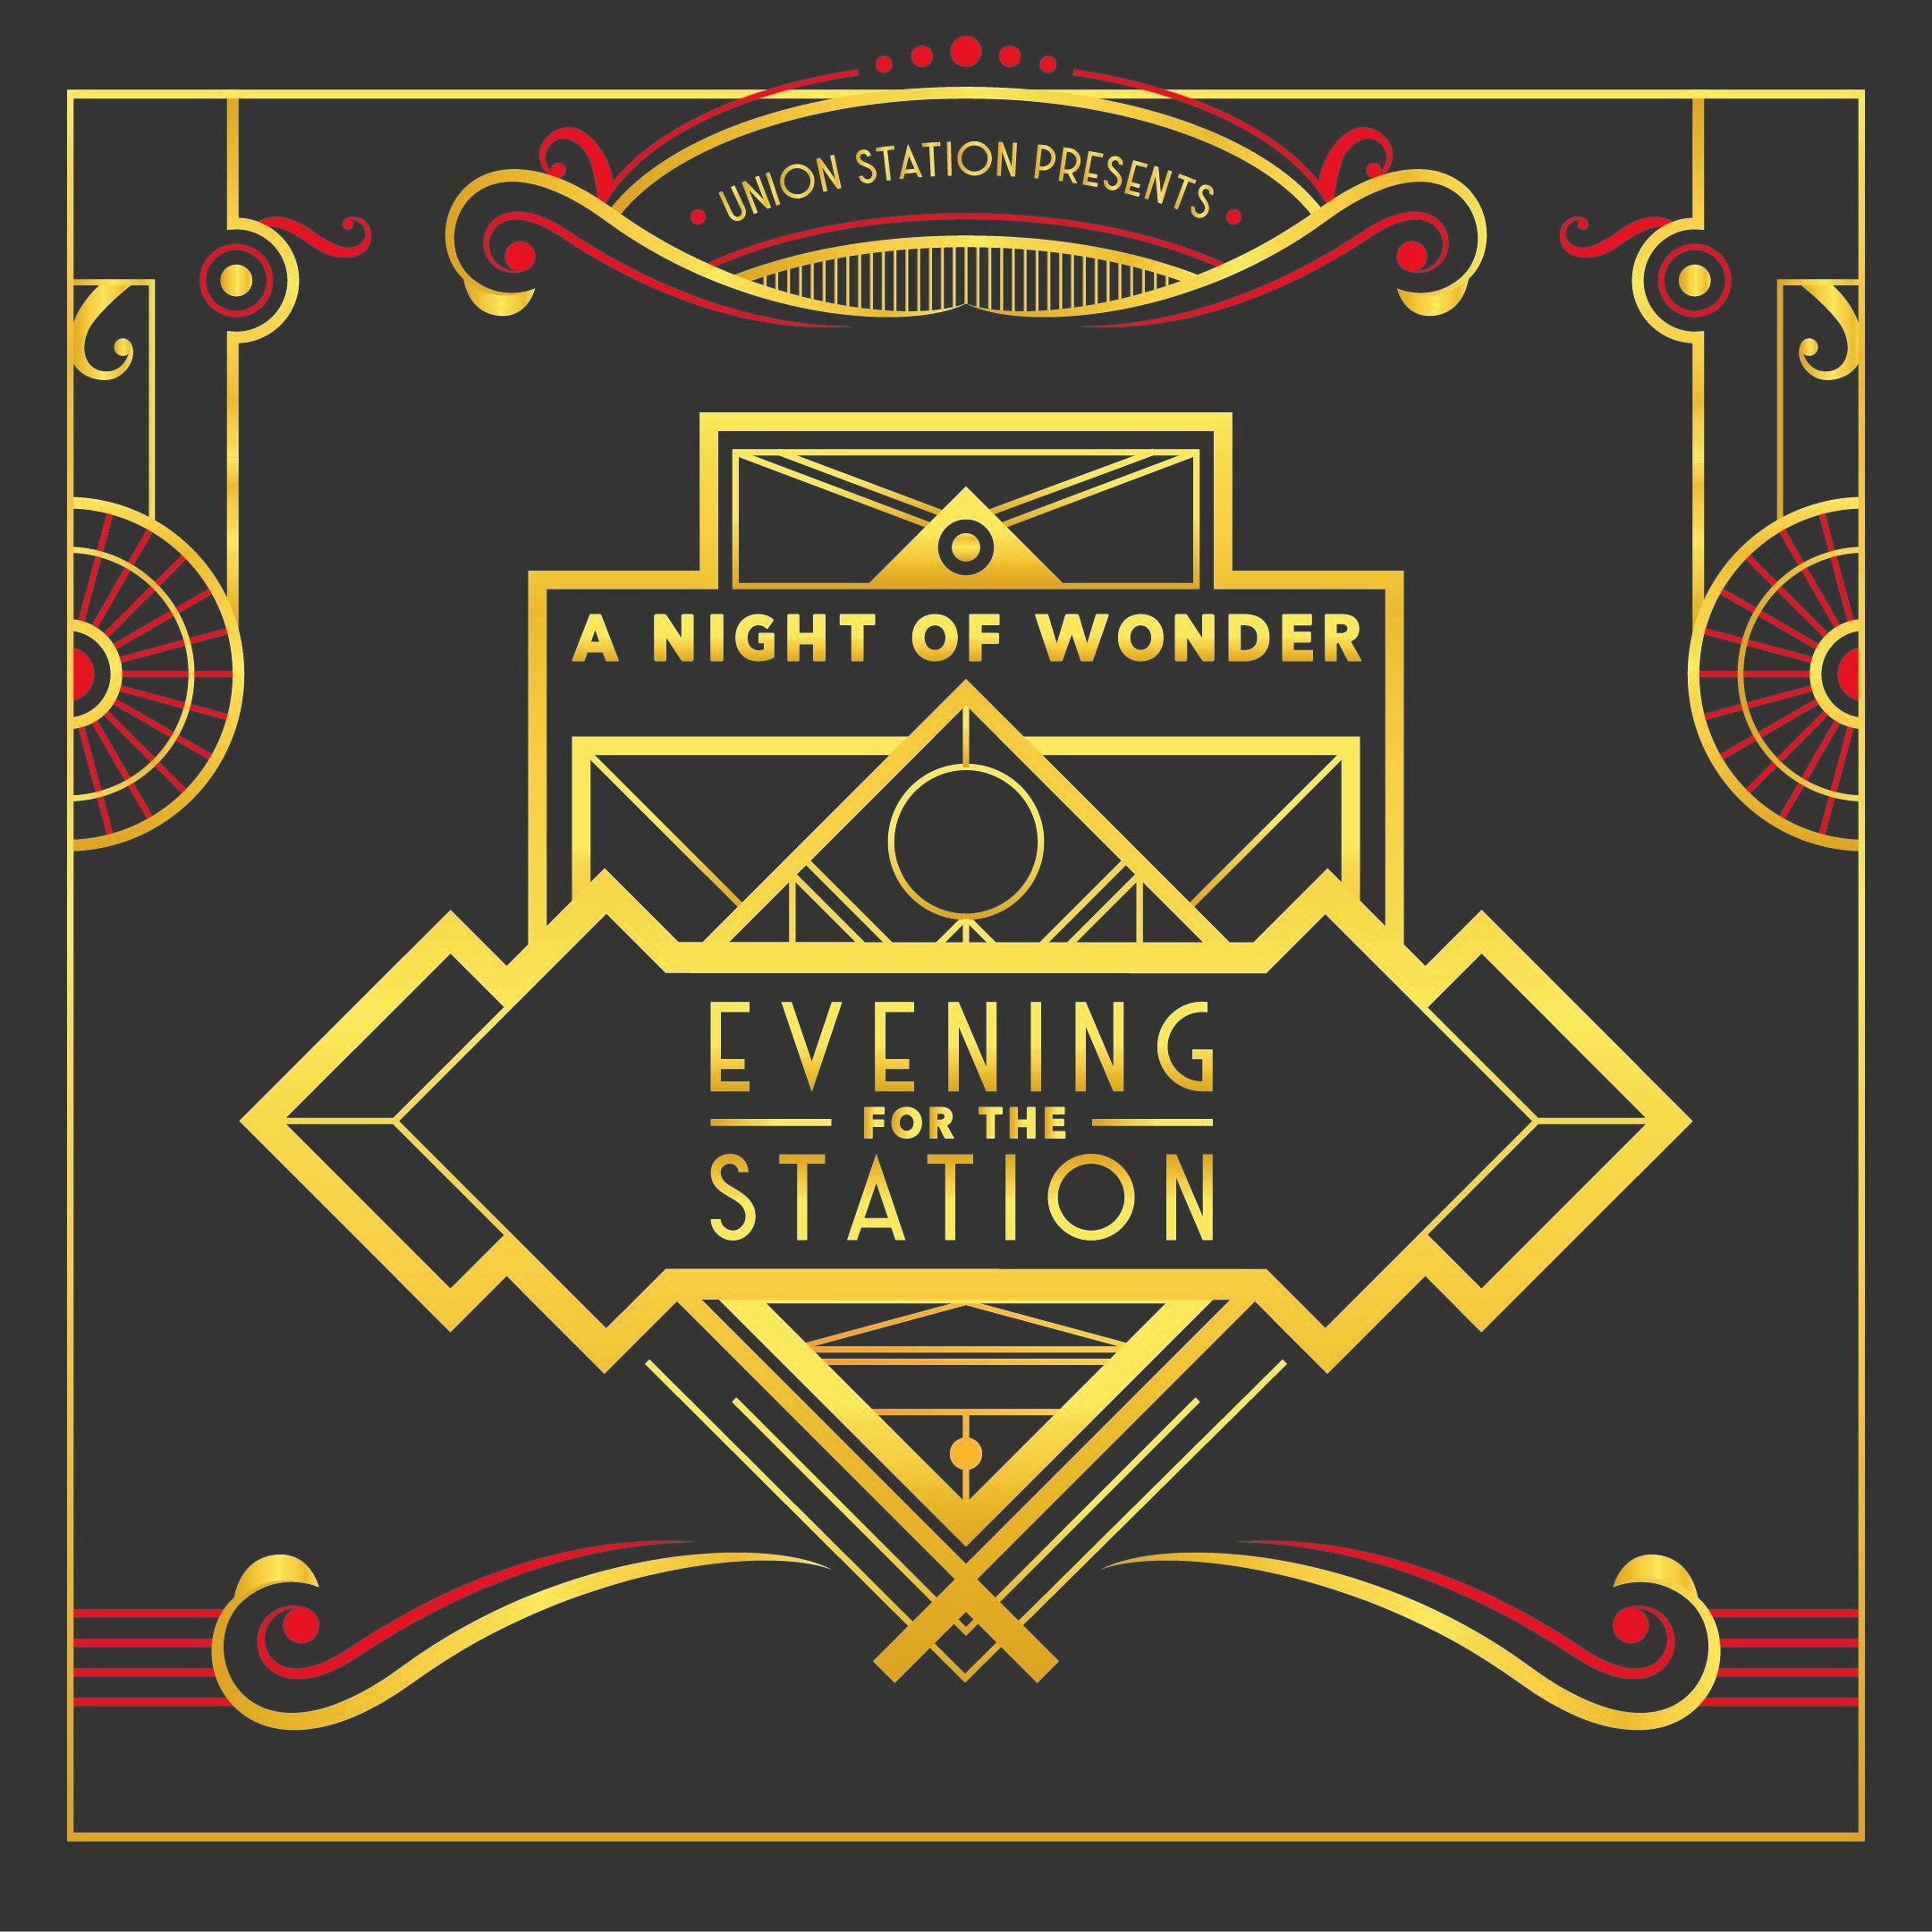 Picture of evening for the station logo